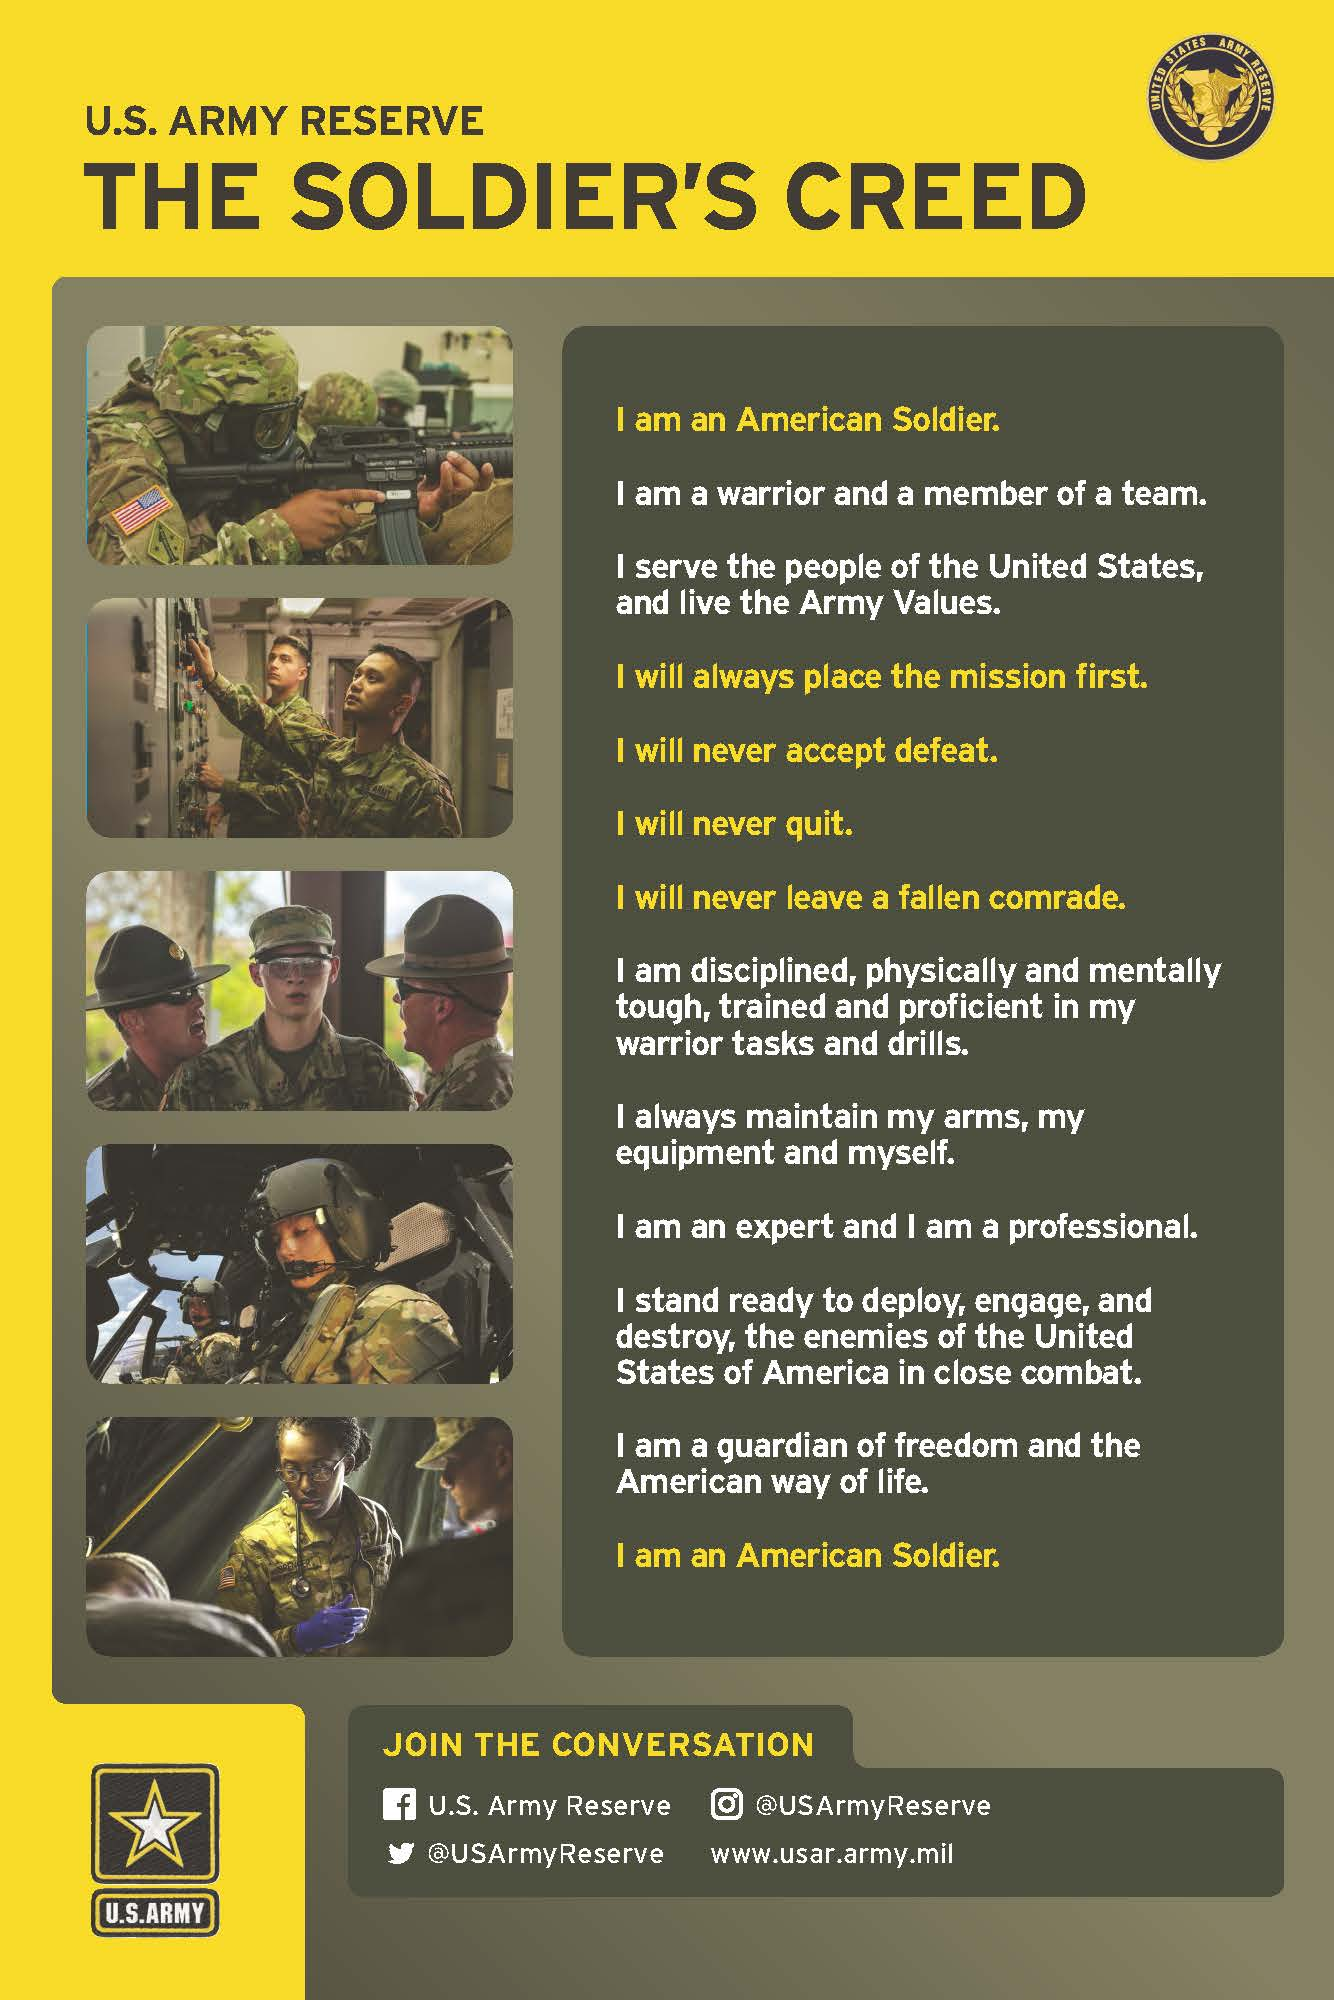 Soldiers Creed infographic